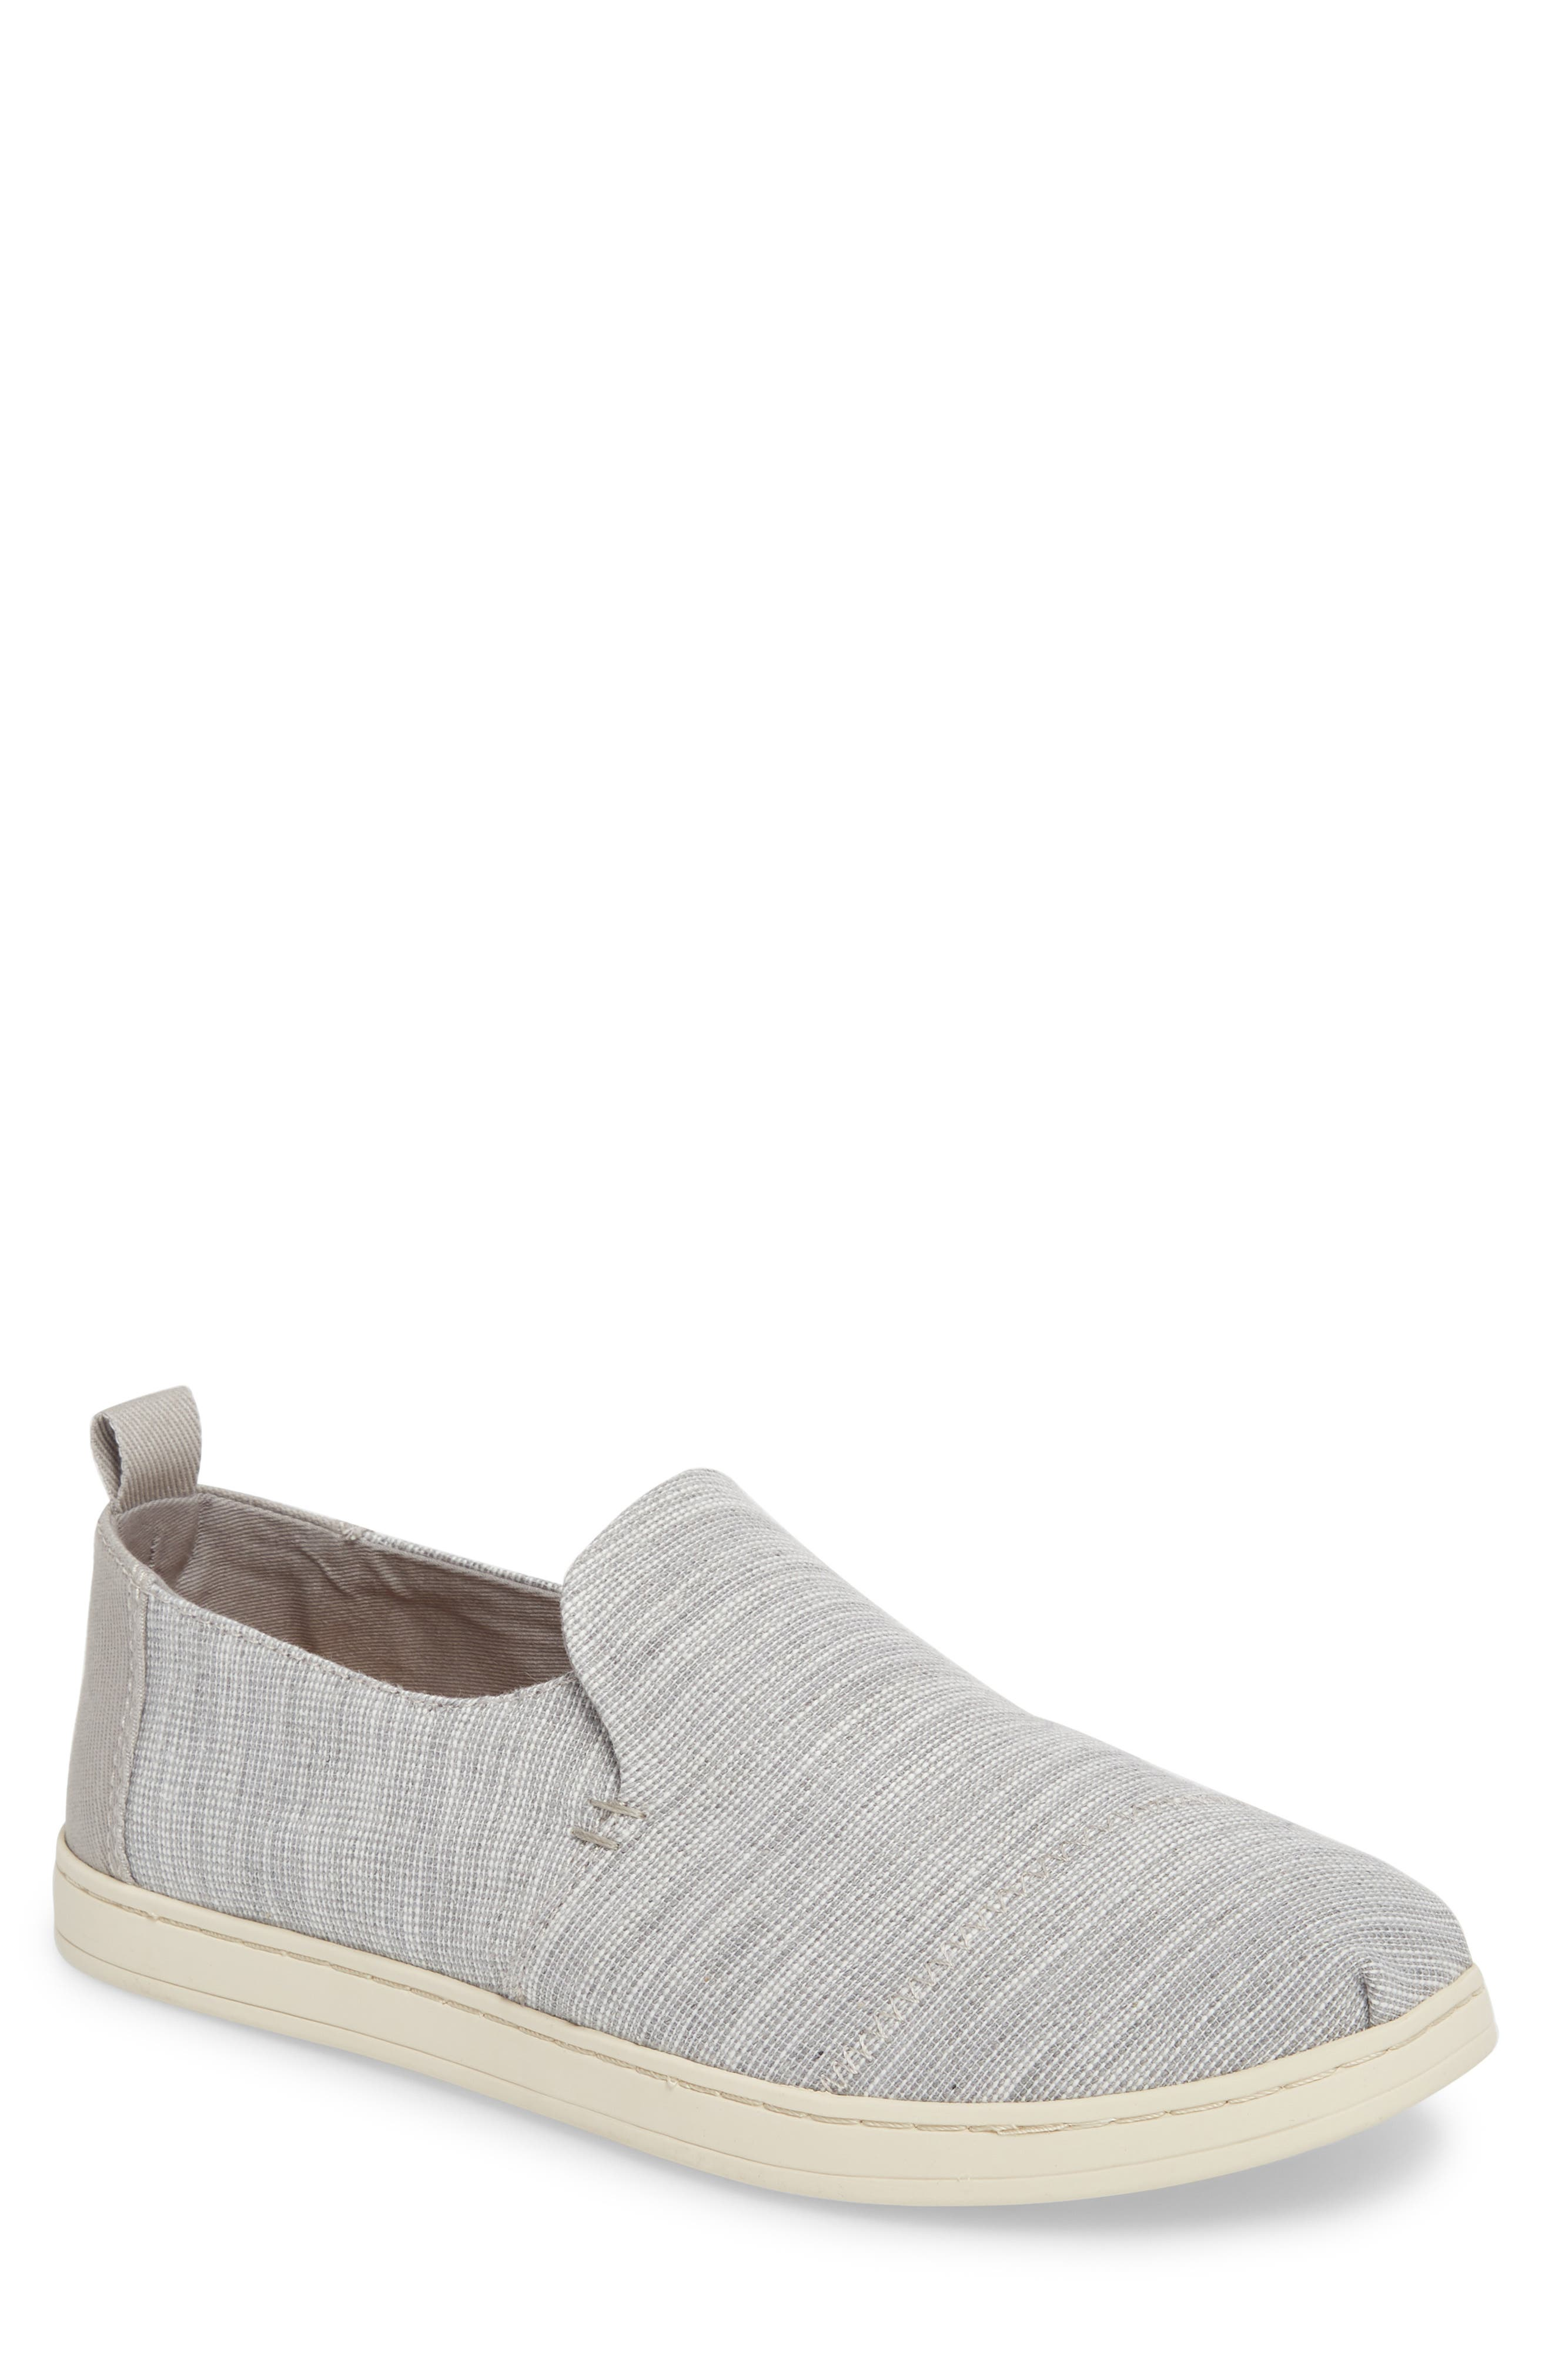 Deconstructed Alpargata Slip-On,                             Main thumbnail 1, color,                             Drizzle Striped Chambray